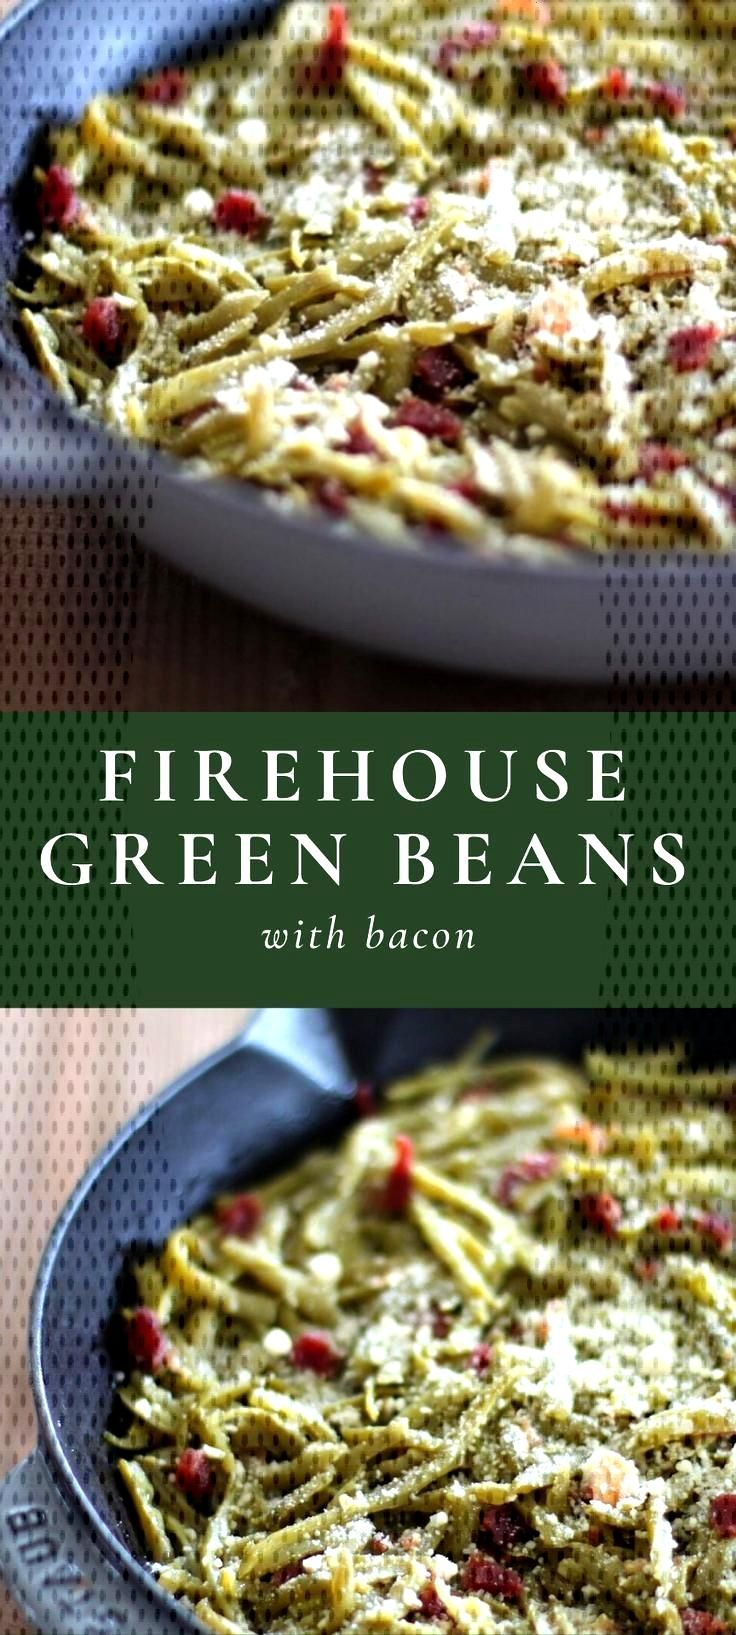 Step aside green bean casserole, Firehouse Green Beans with Bacon are an easy, last-minute side dis